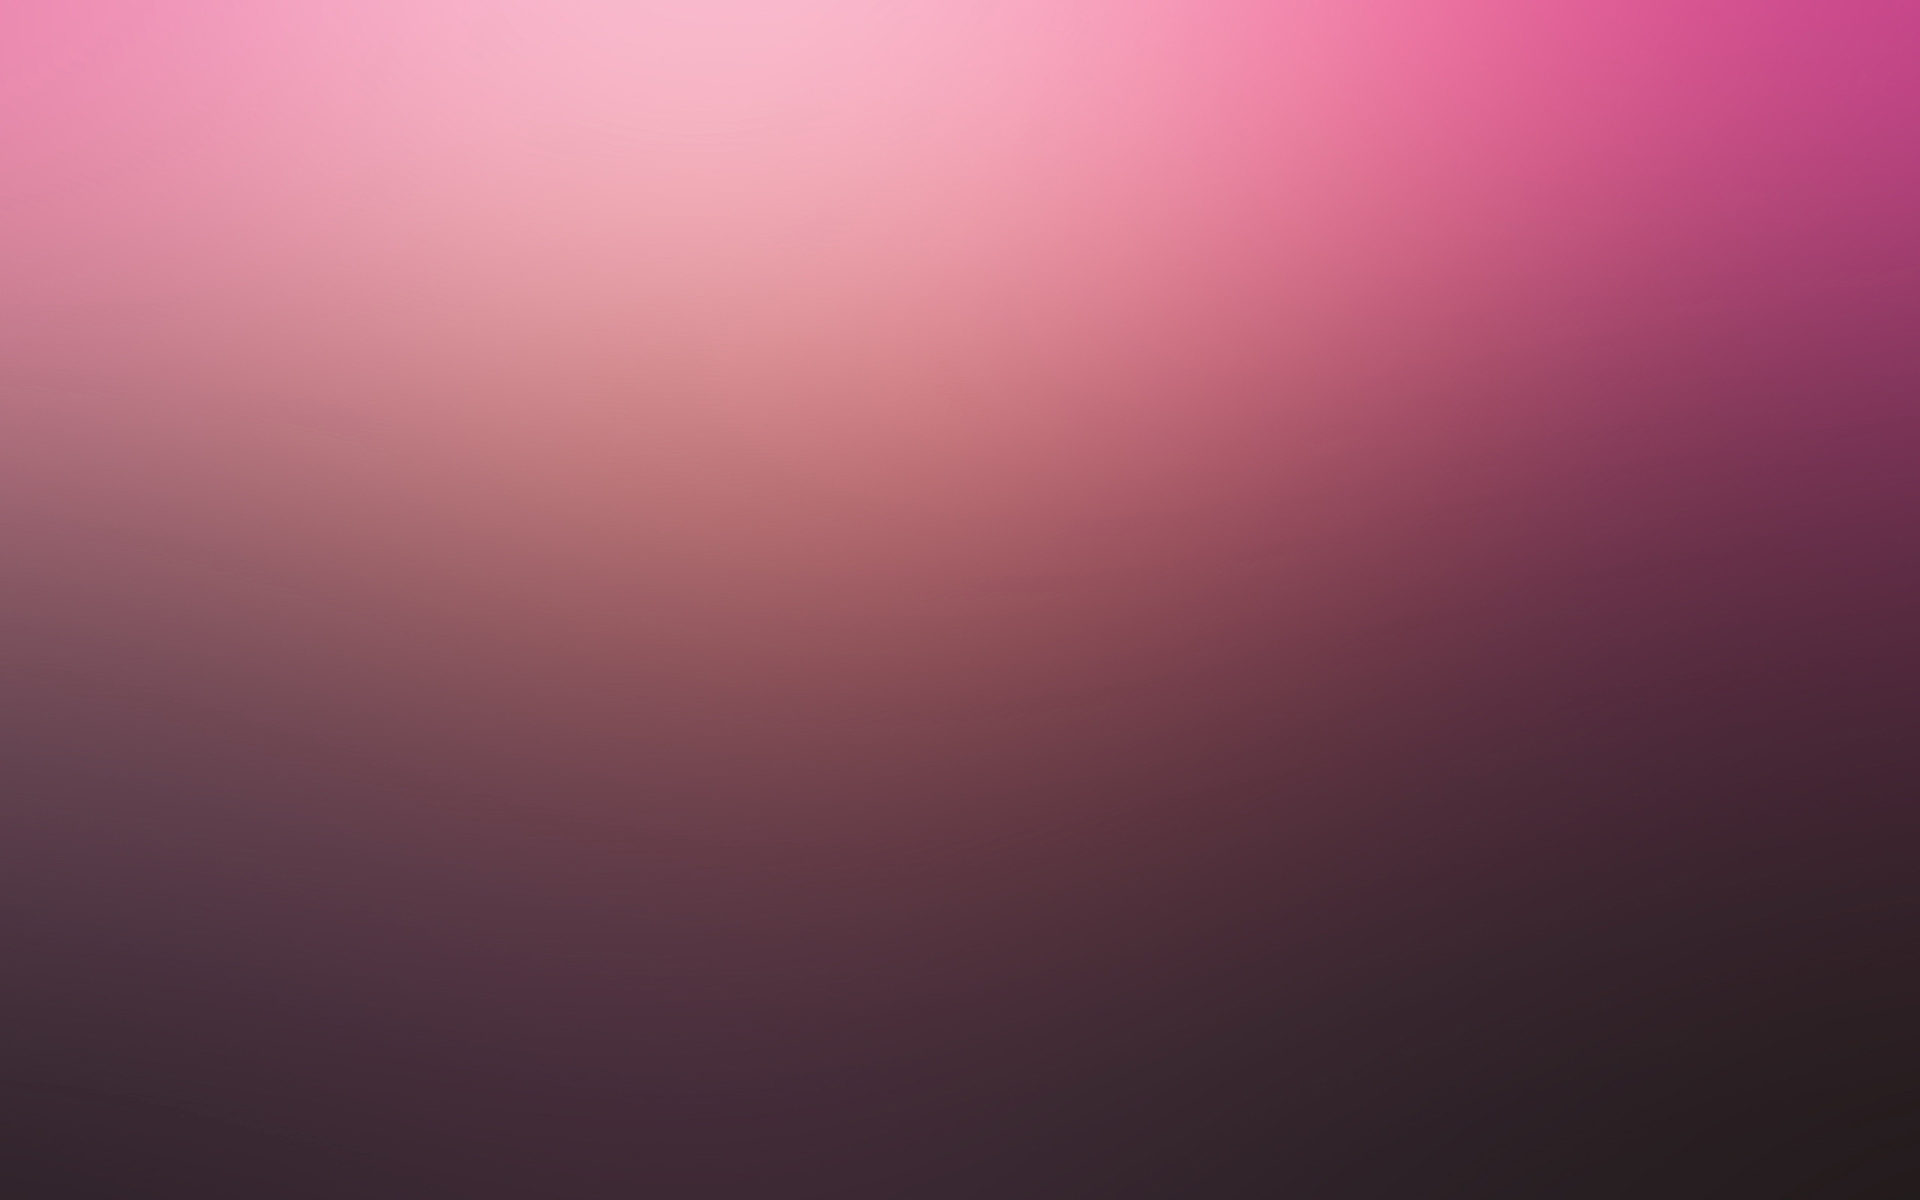 Image Simple Pink Wallpapers And Stock Photos